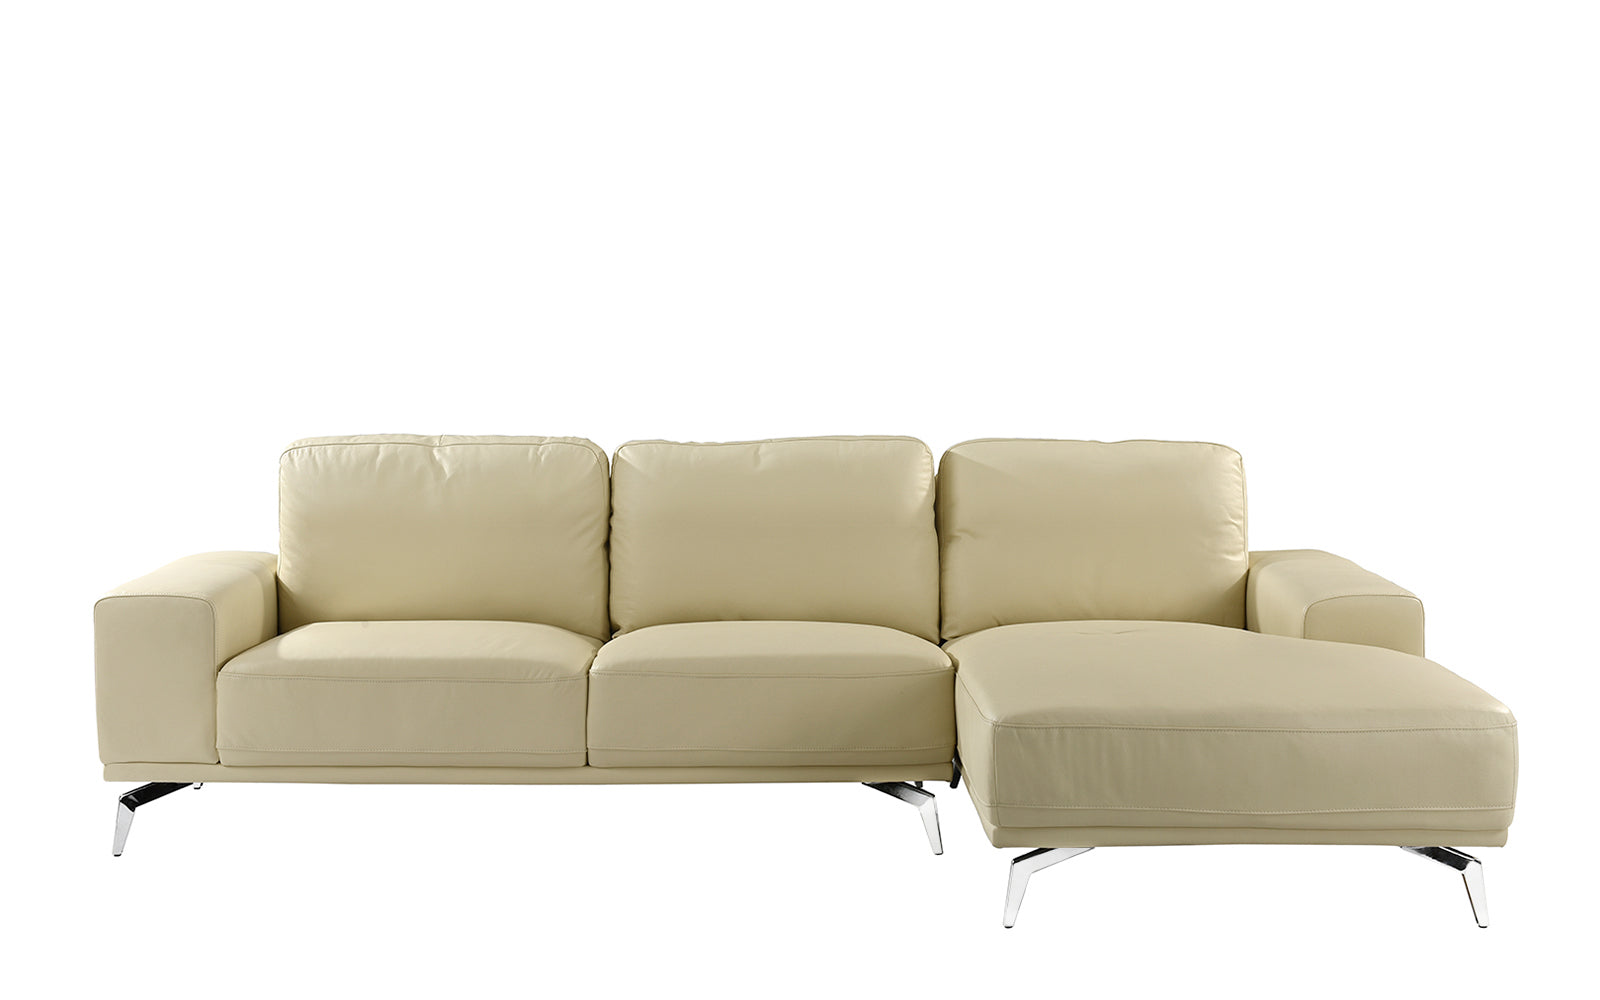 Benci Modern Low Profile L Shape Sectional Sofa With Right Chaise